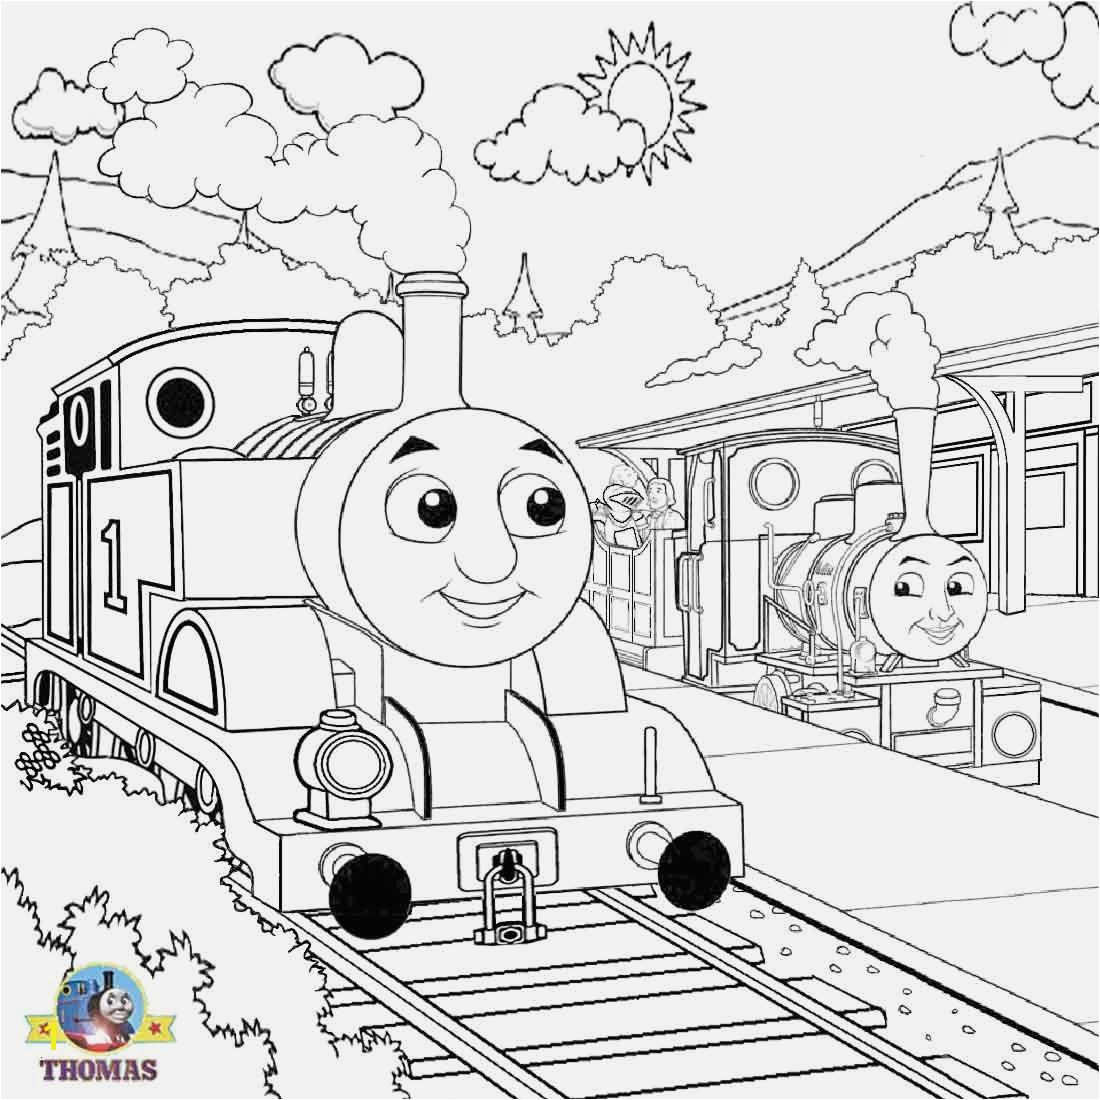 Thomas the Train Coloring Pages Printable Coloring Pages Inspirational Thomas the Train Coloring Book Coloring Pages